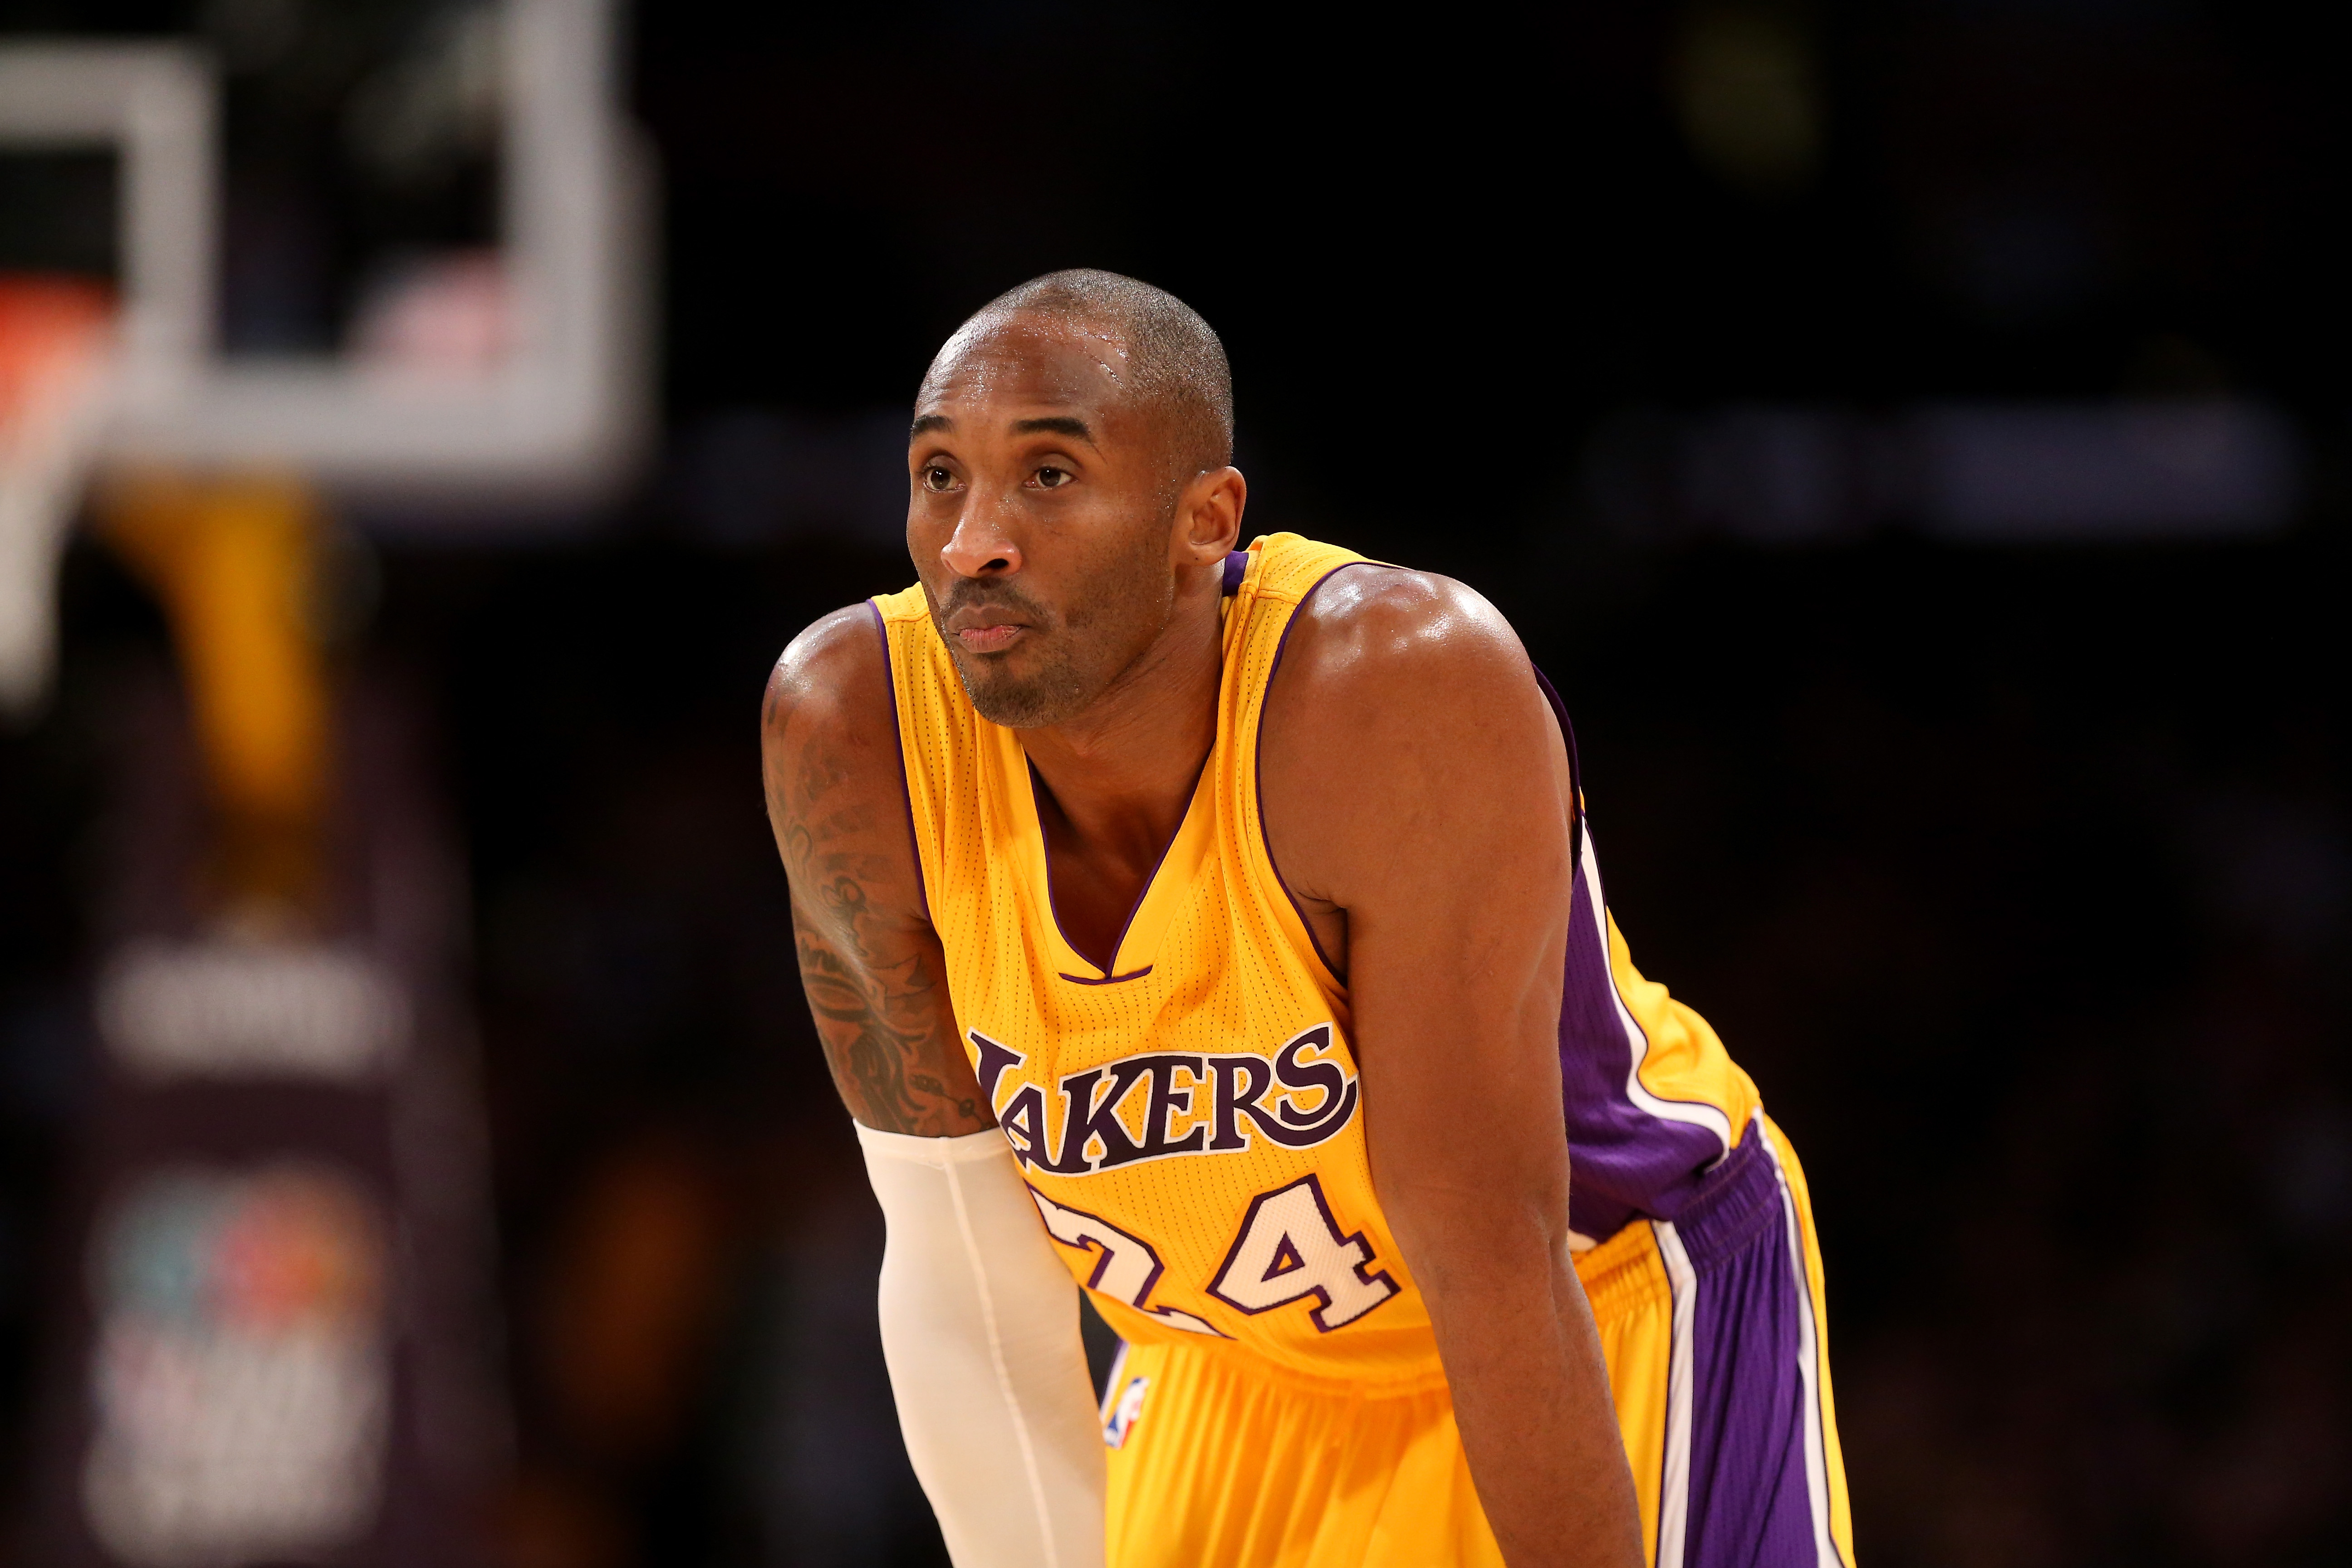 The ticket prices for Kobe Bryant's final game are insane